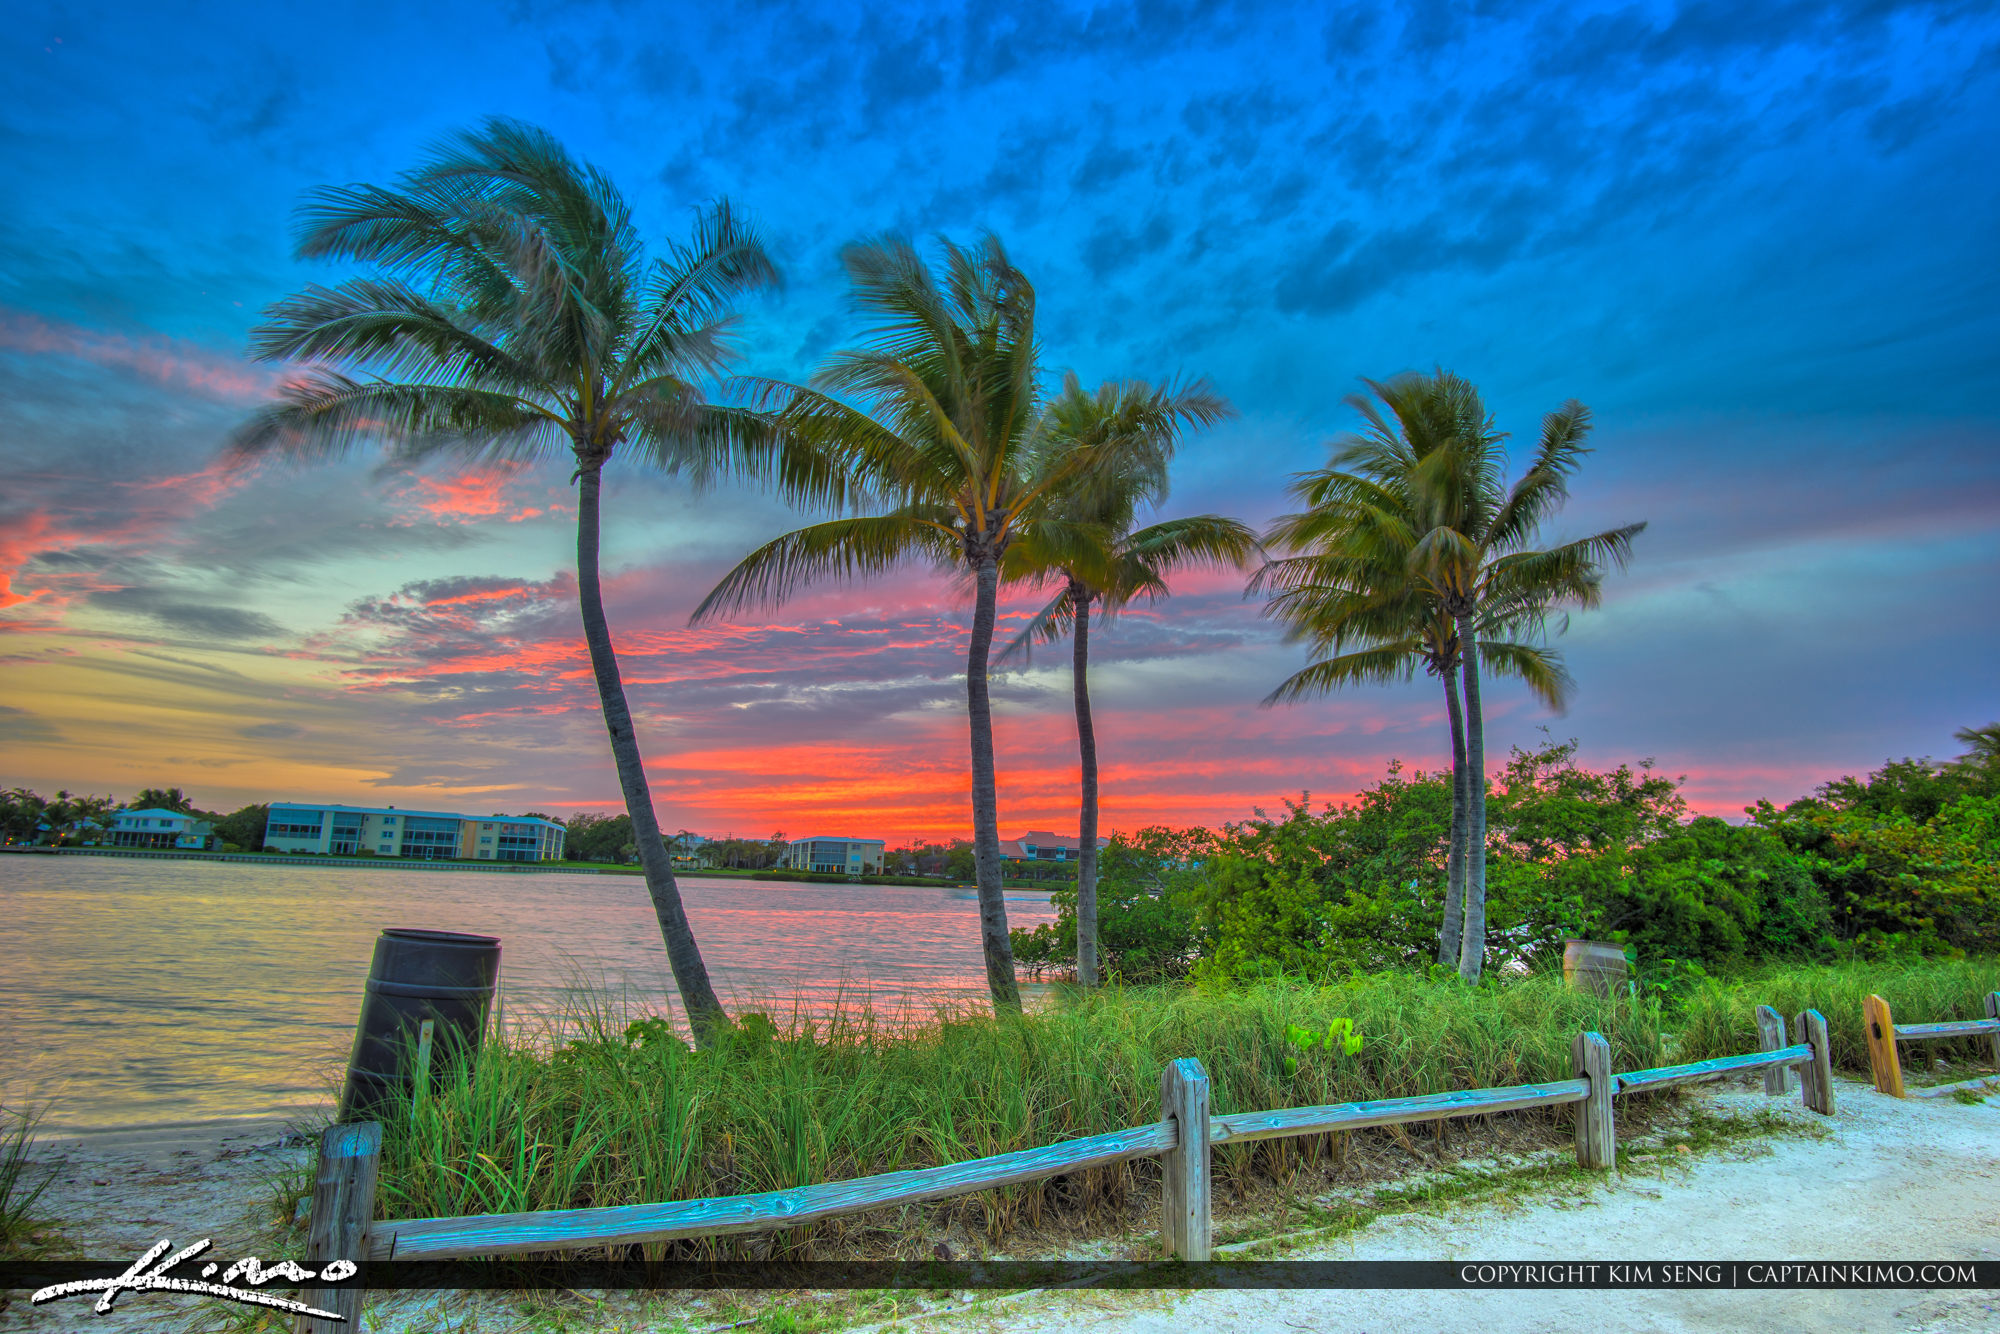 Jupiter Island Sunset Along the Waterway with Coconut Palms